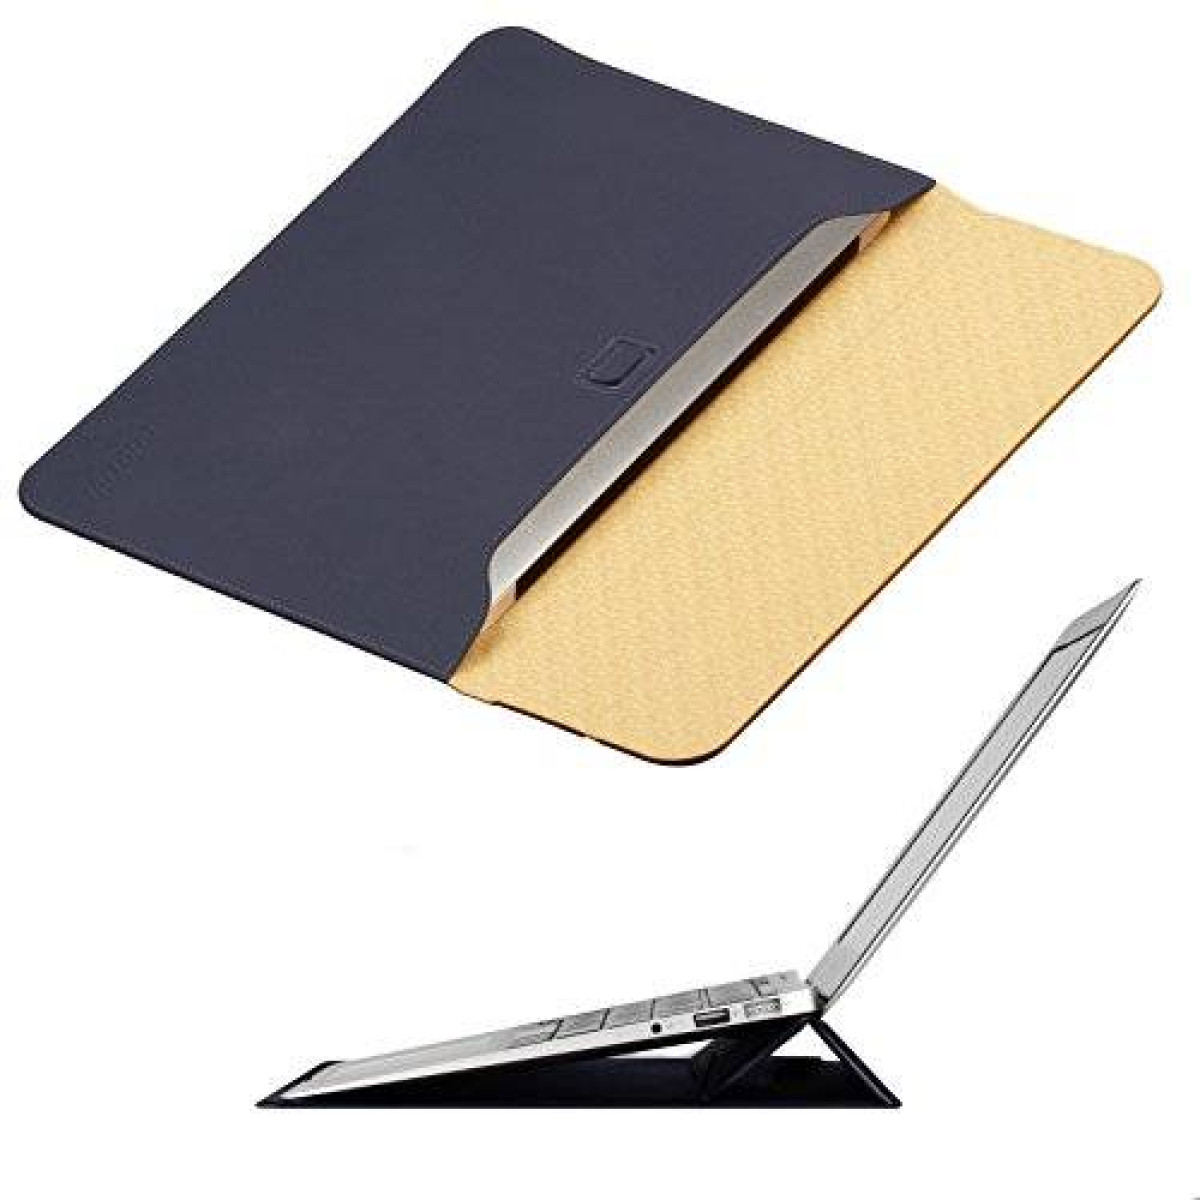 cases and sleeves for the MacBook Air